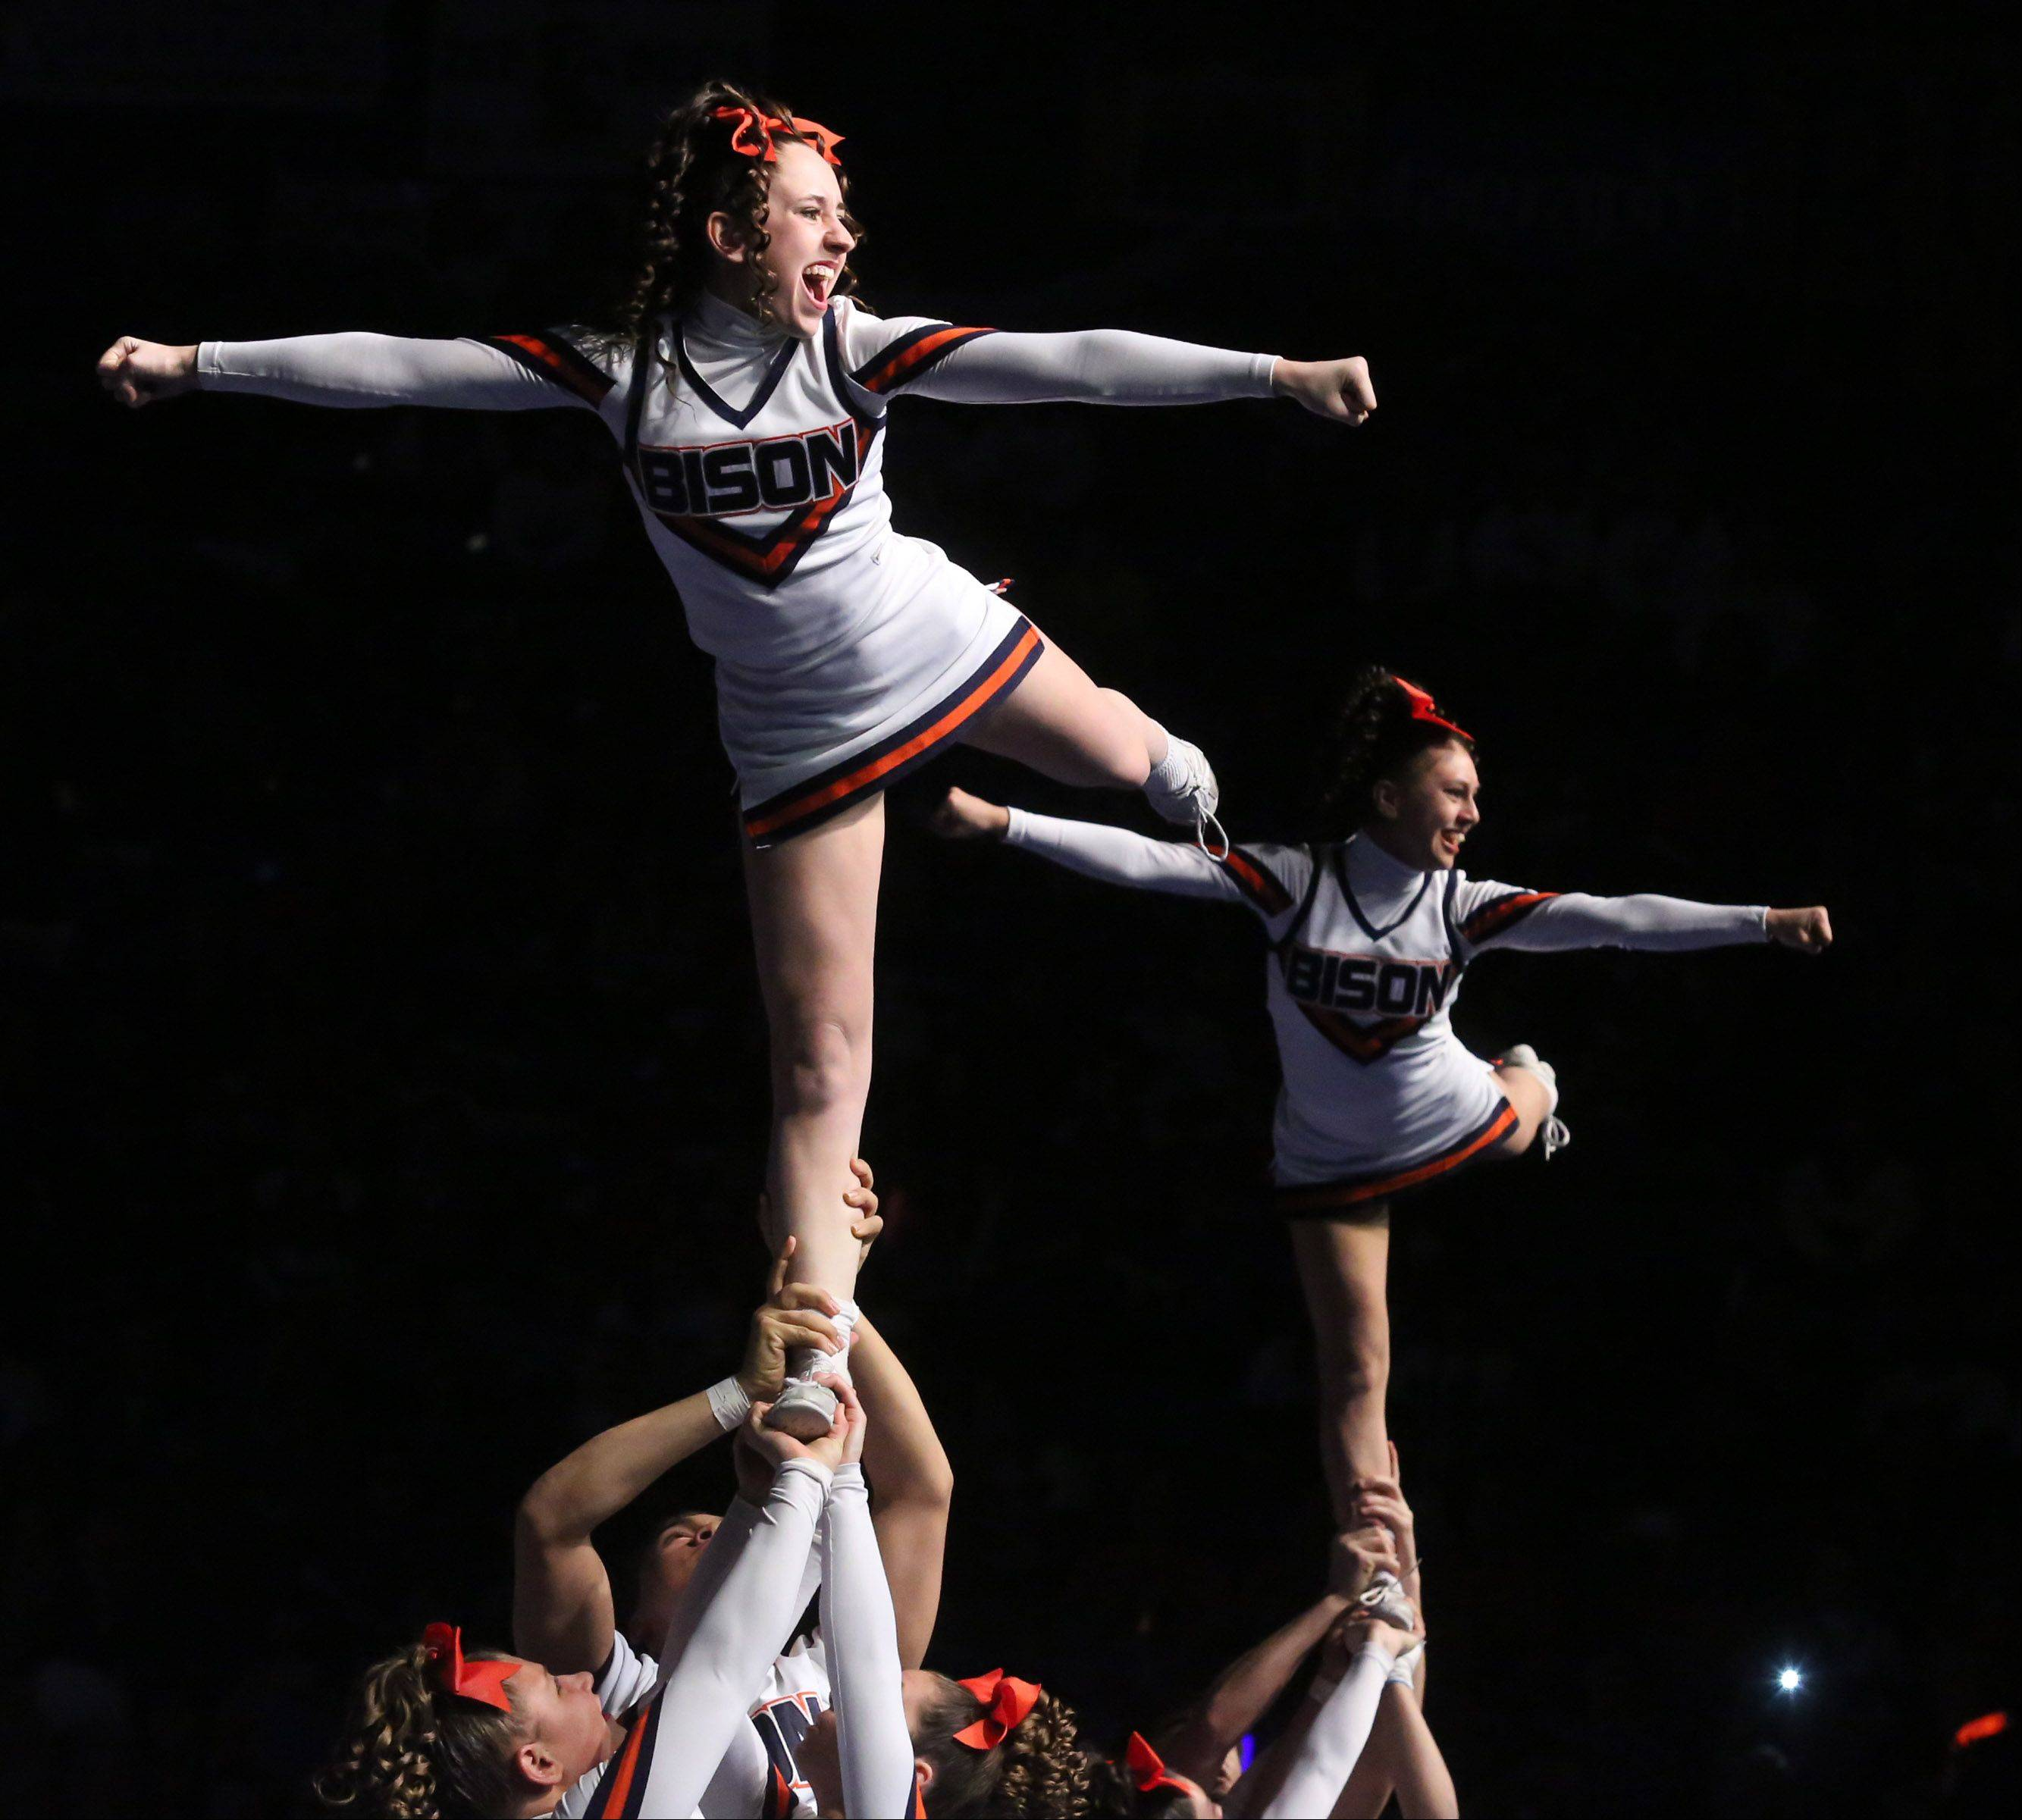 Buffalo Grove High School's cheer team performs in the coed team category.